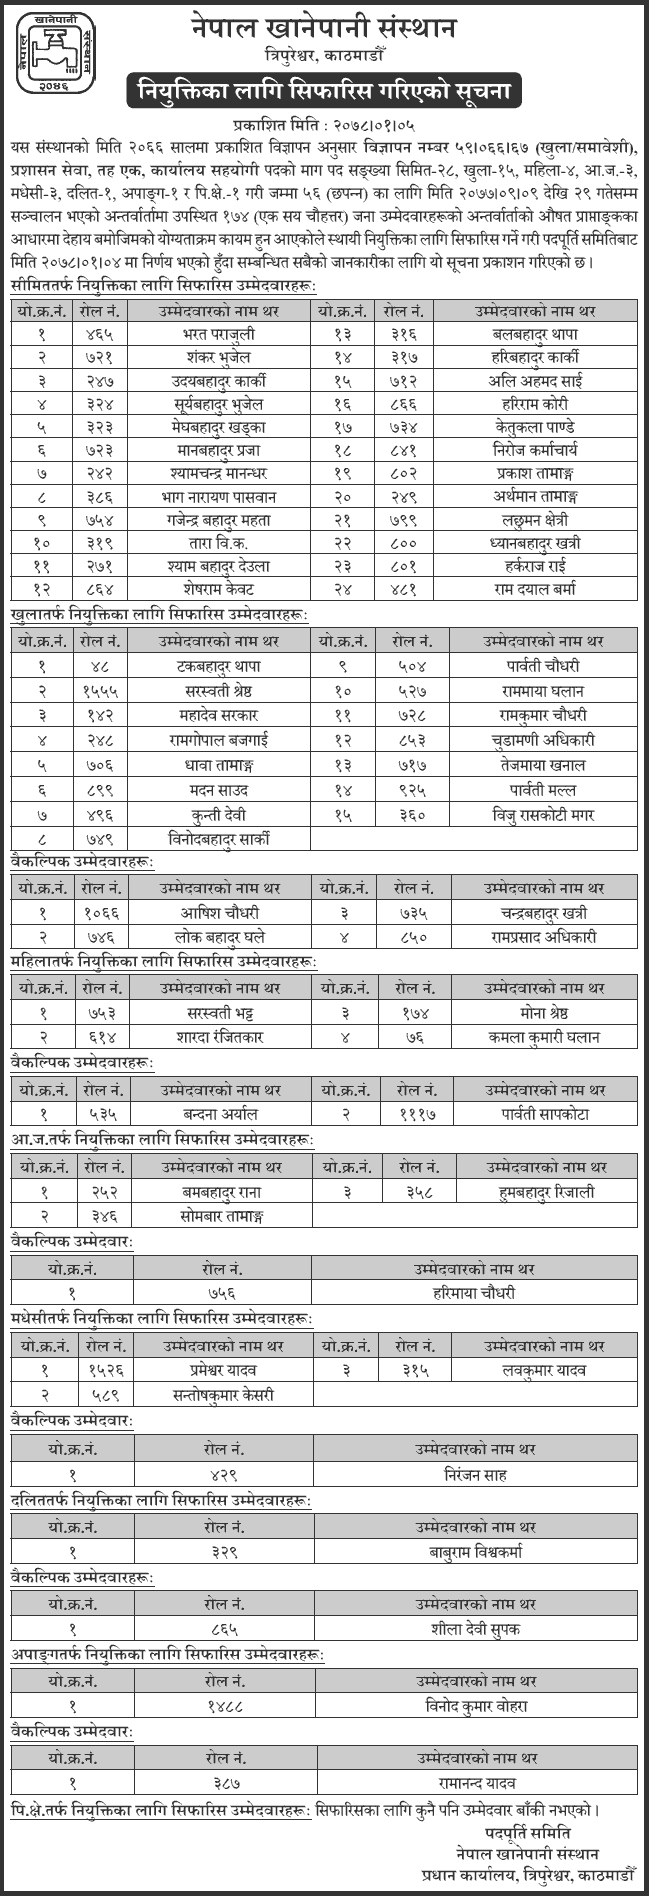 Nepal Khanepani Sansthan Published Final Result and Appointment of Office Helper